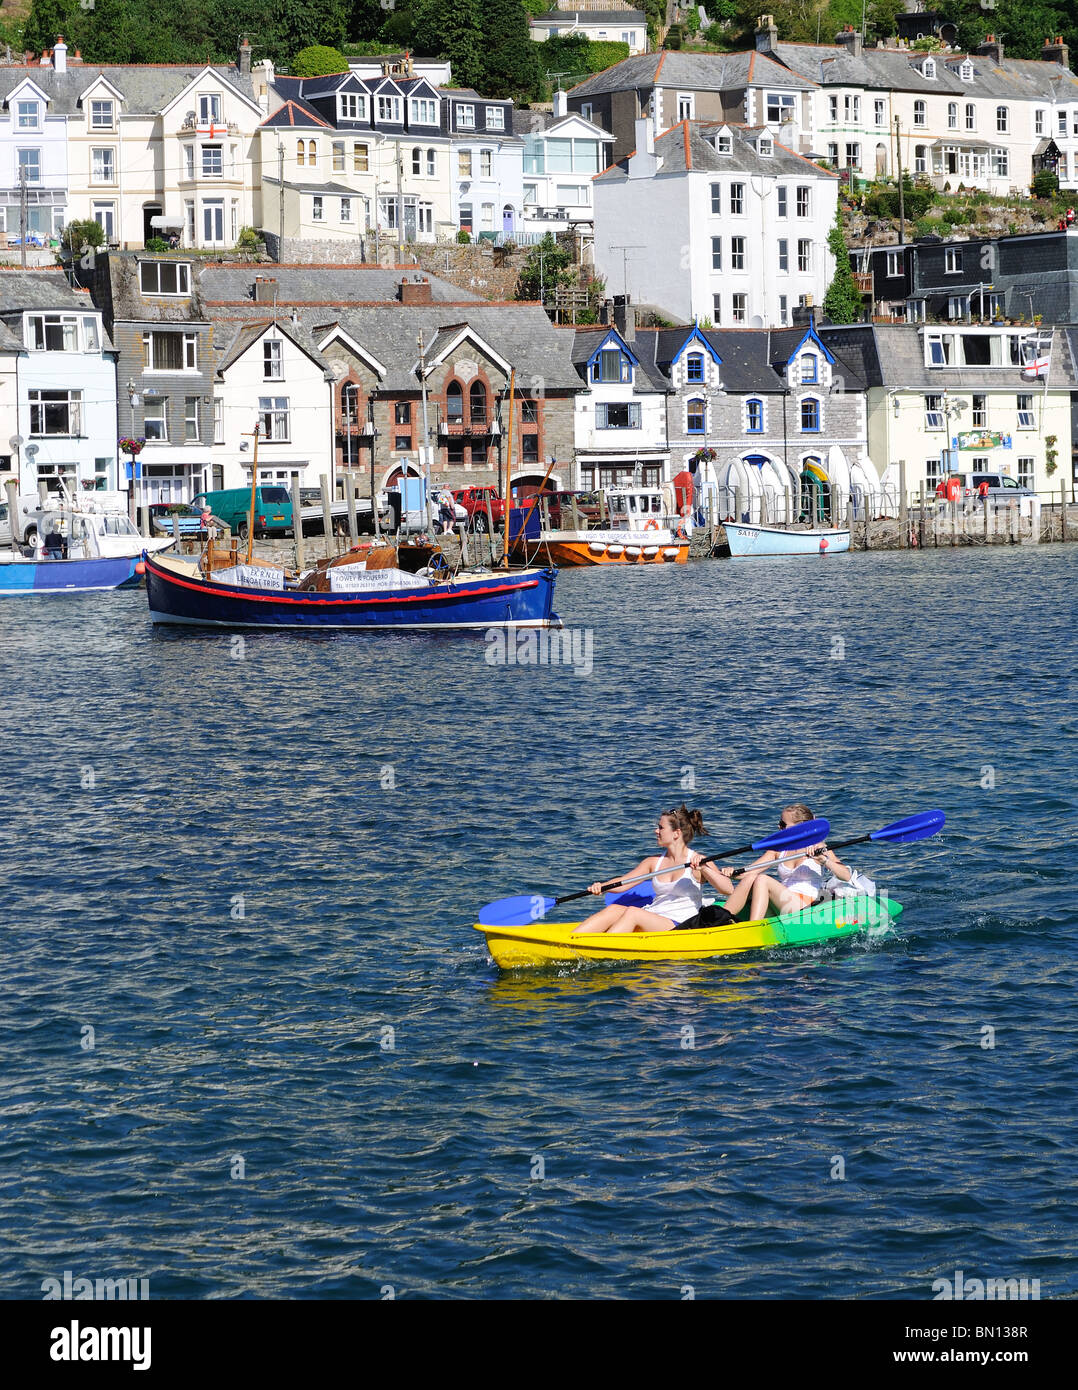 a canoe on the river at looe in cornwall, uk Stock Photo